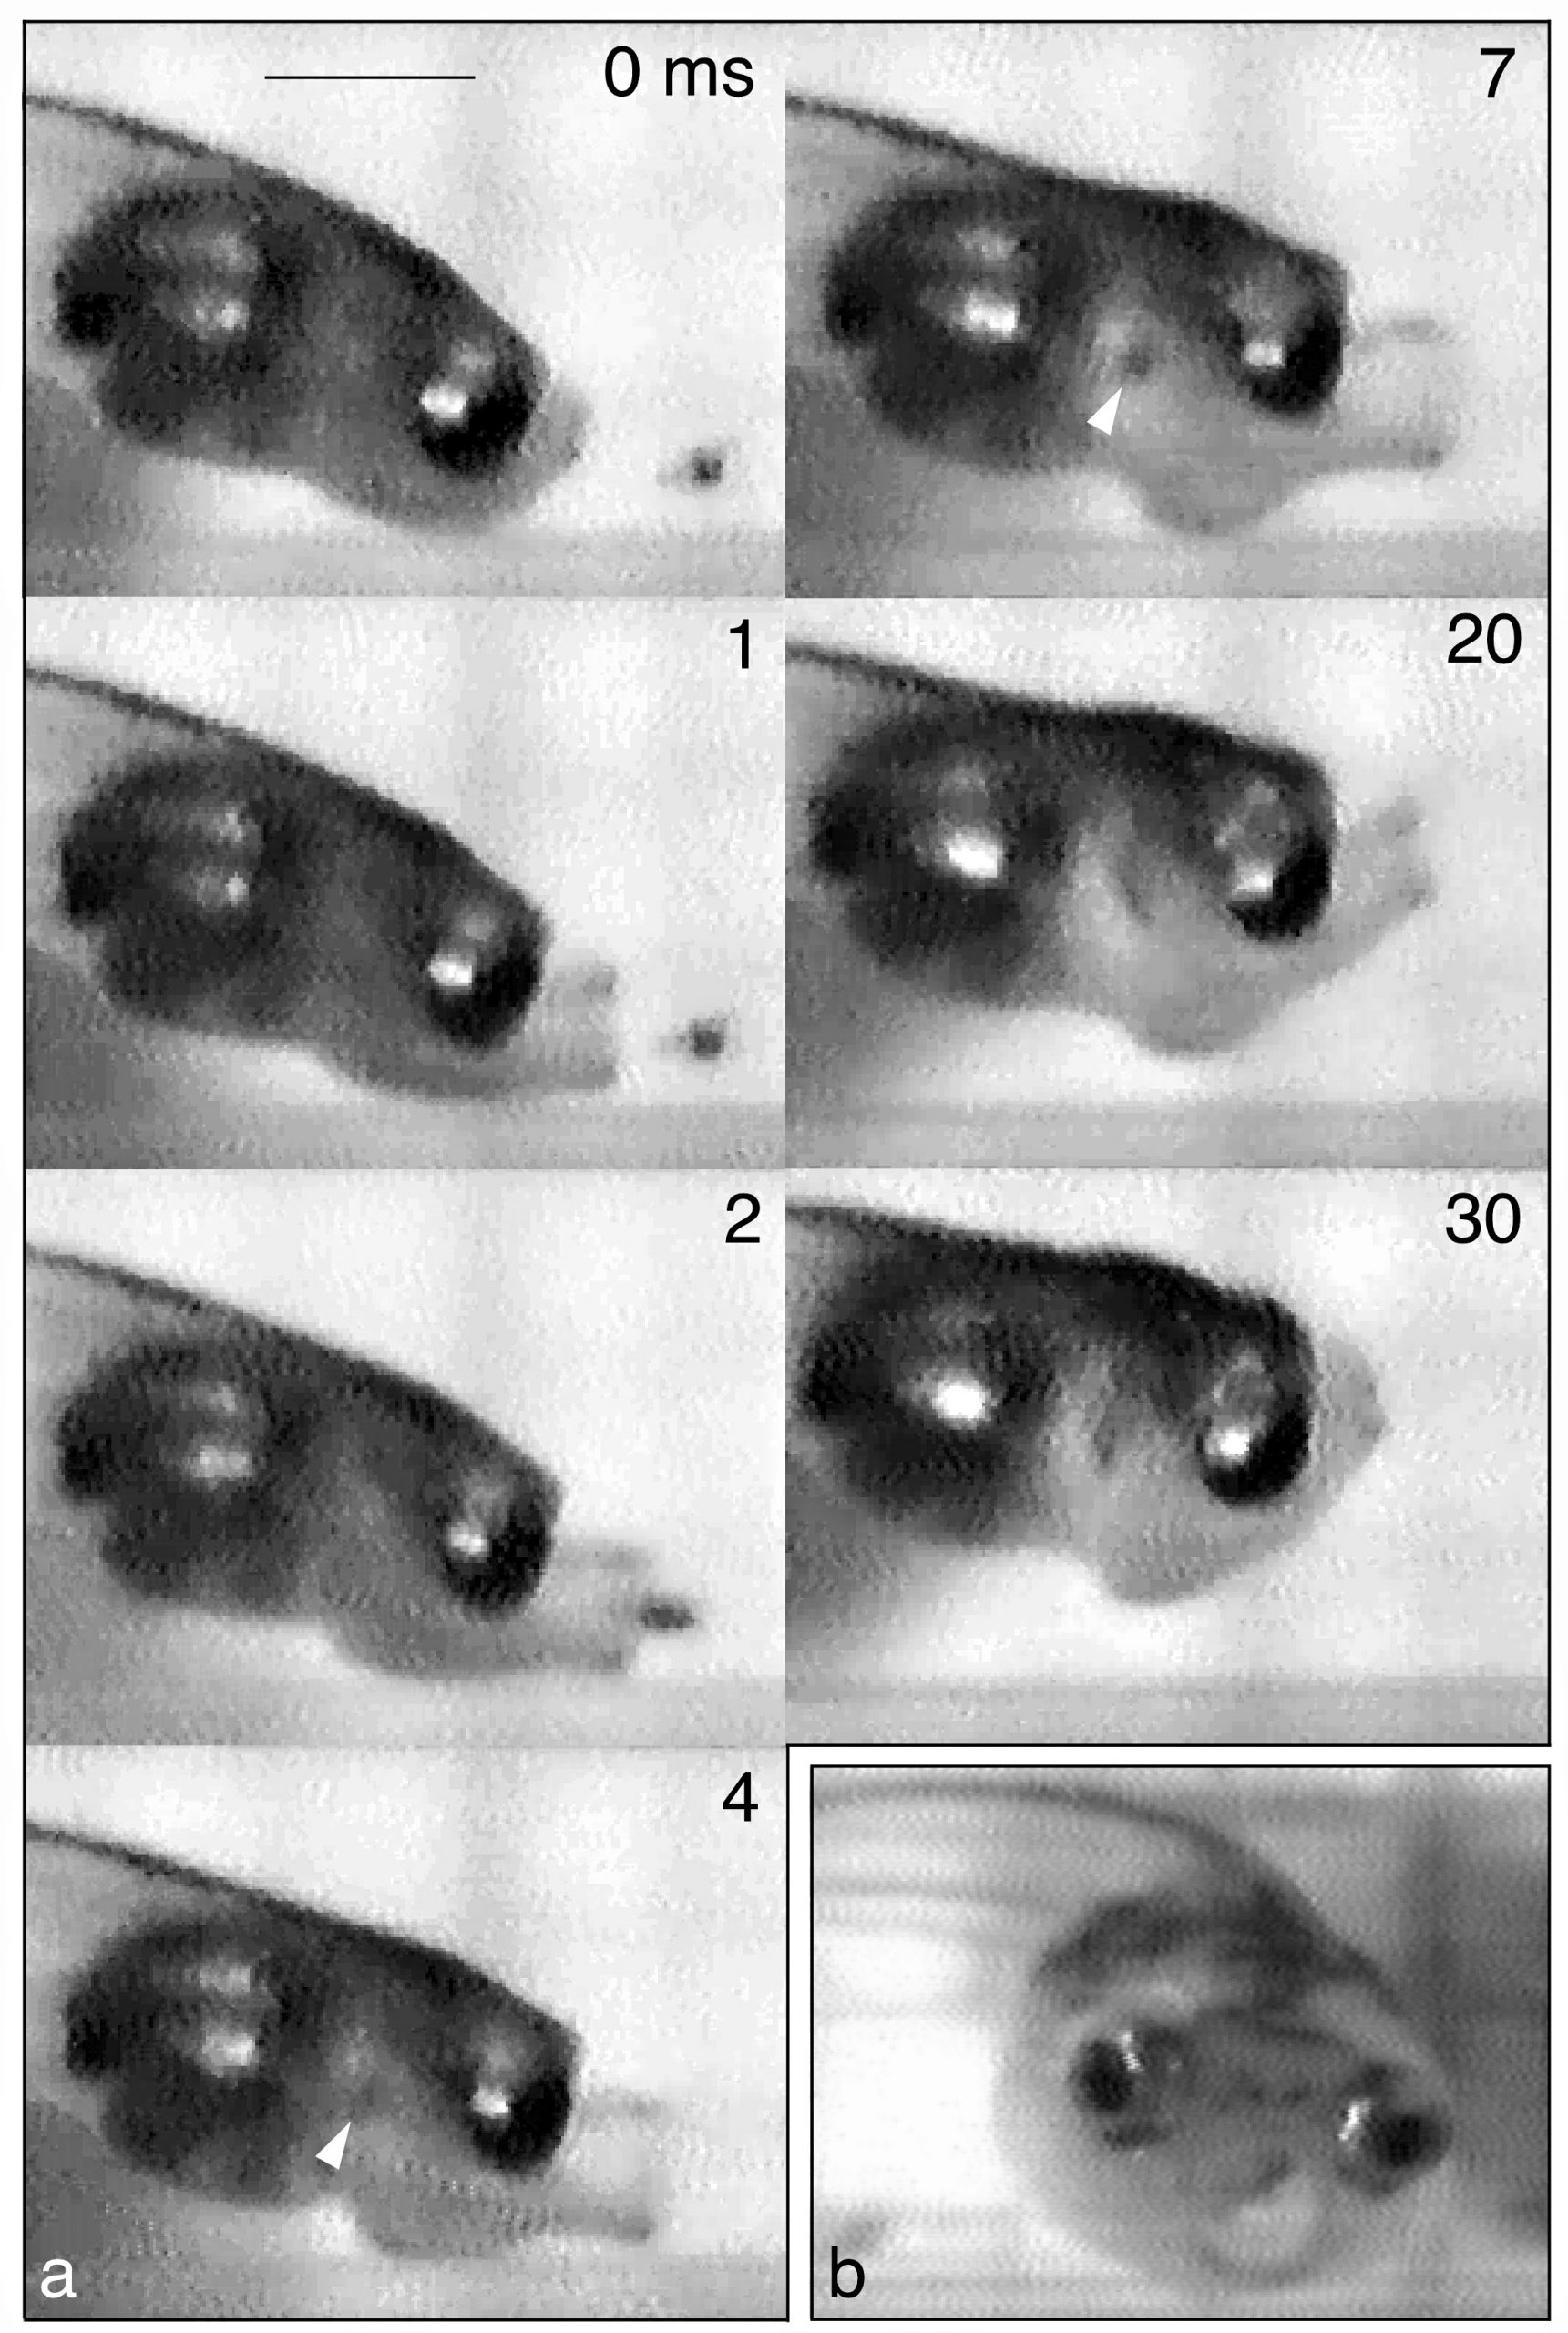 A sequence of seven high-speed video photos shows an African dwarf clawed frog tadpole extending its mouth and sucking in a brine shrimp, then lifting its head and retracting its mouth. Elapsed time, in thousandths of a second, is indicated in the upper right of each image. The white arrow shows the shrimp's location in the tadpole's throat. The eighth photo is a frontal view of the tadpole.